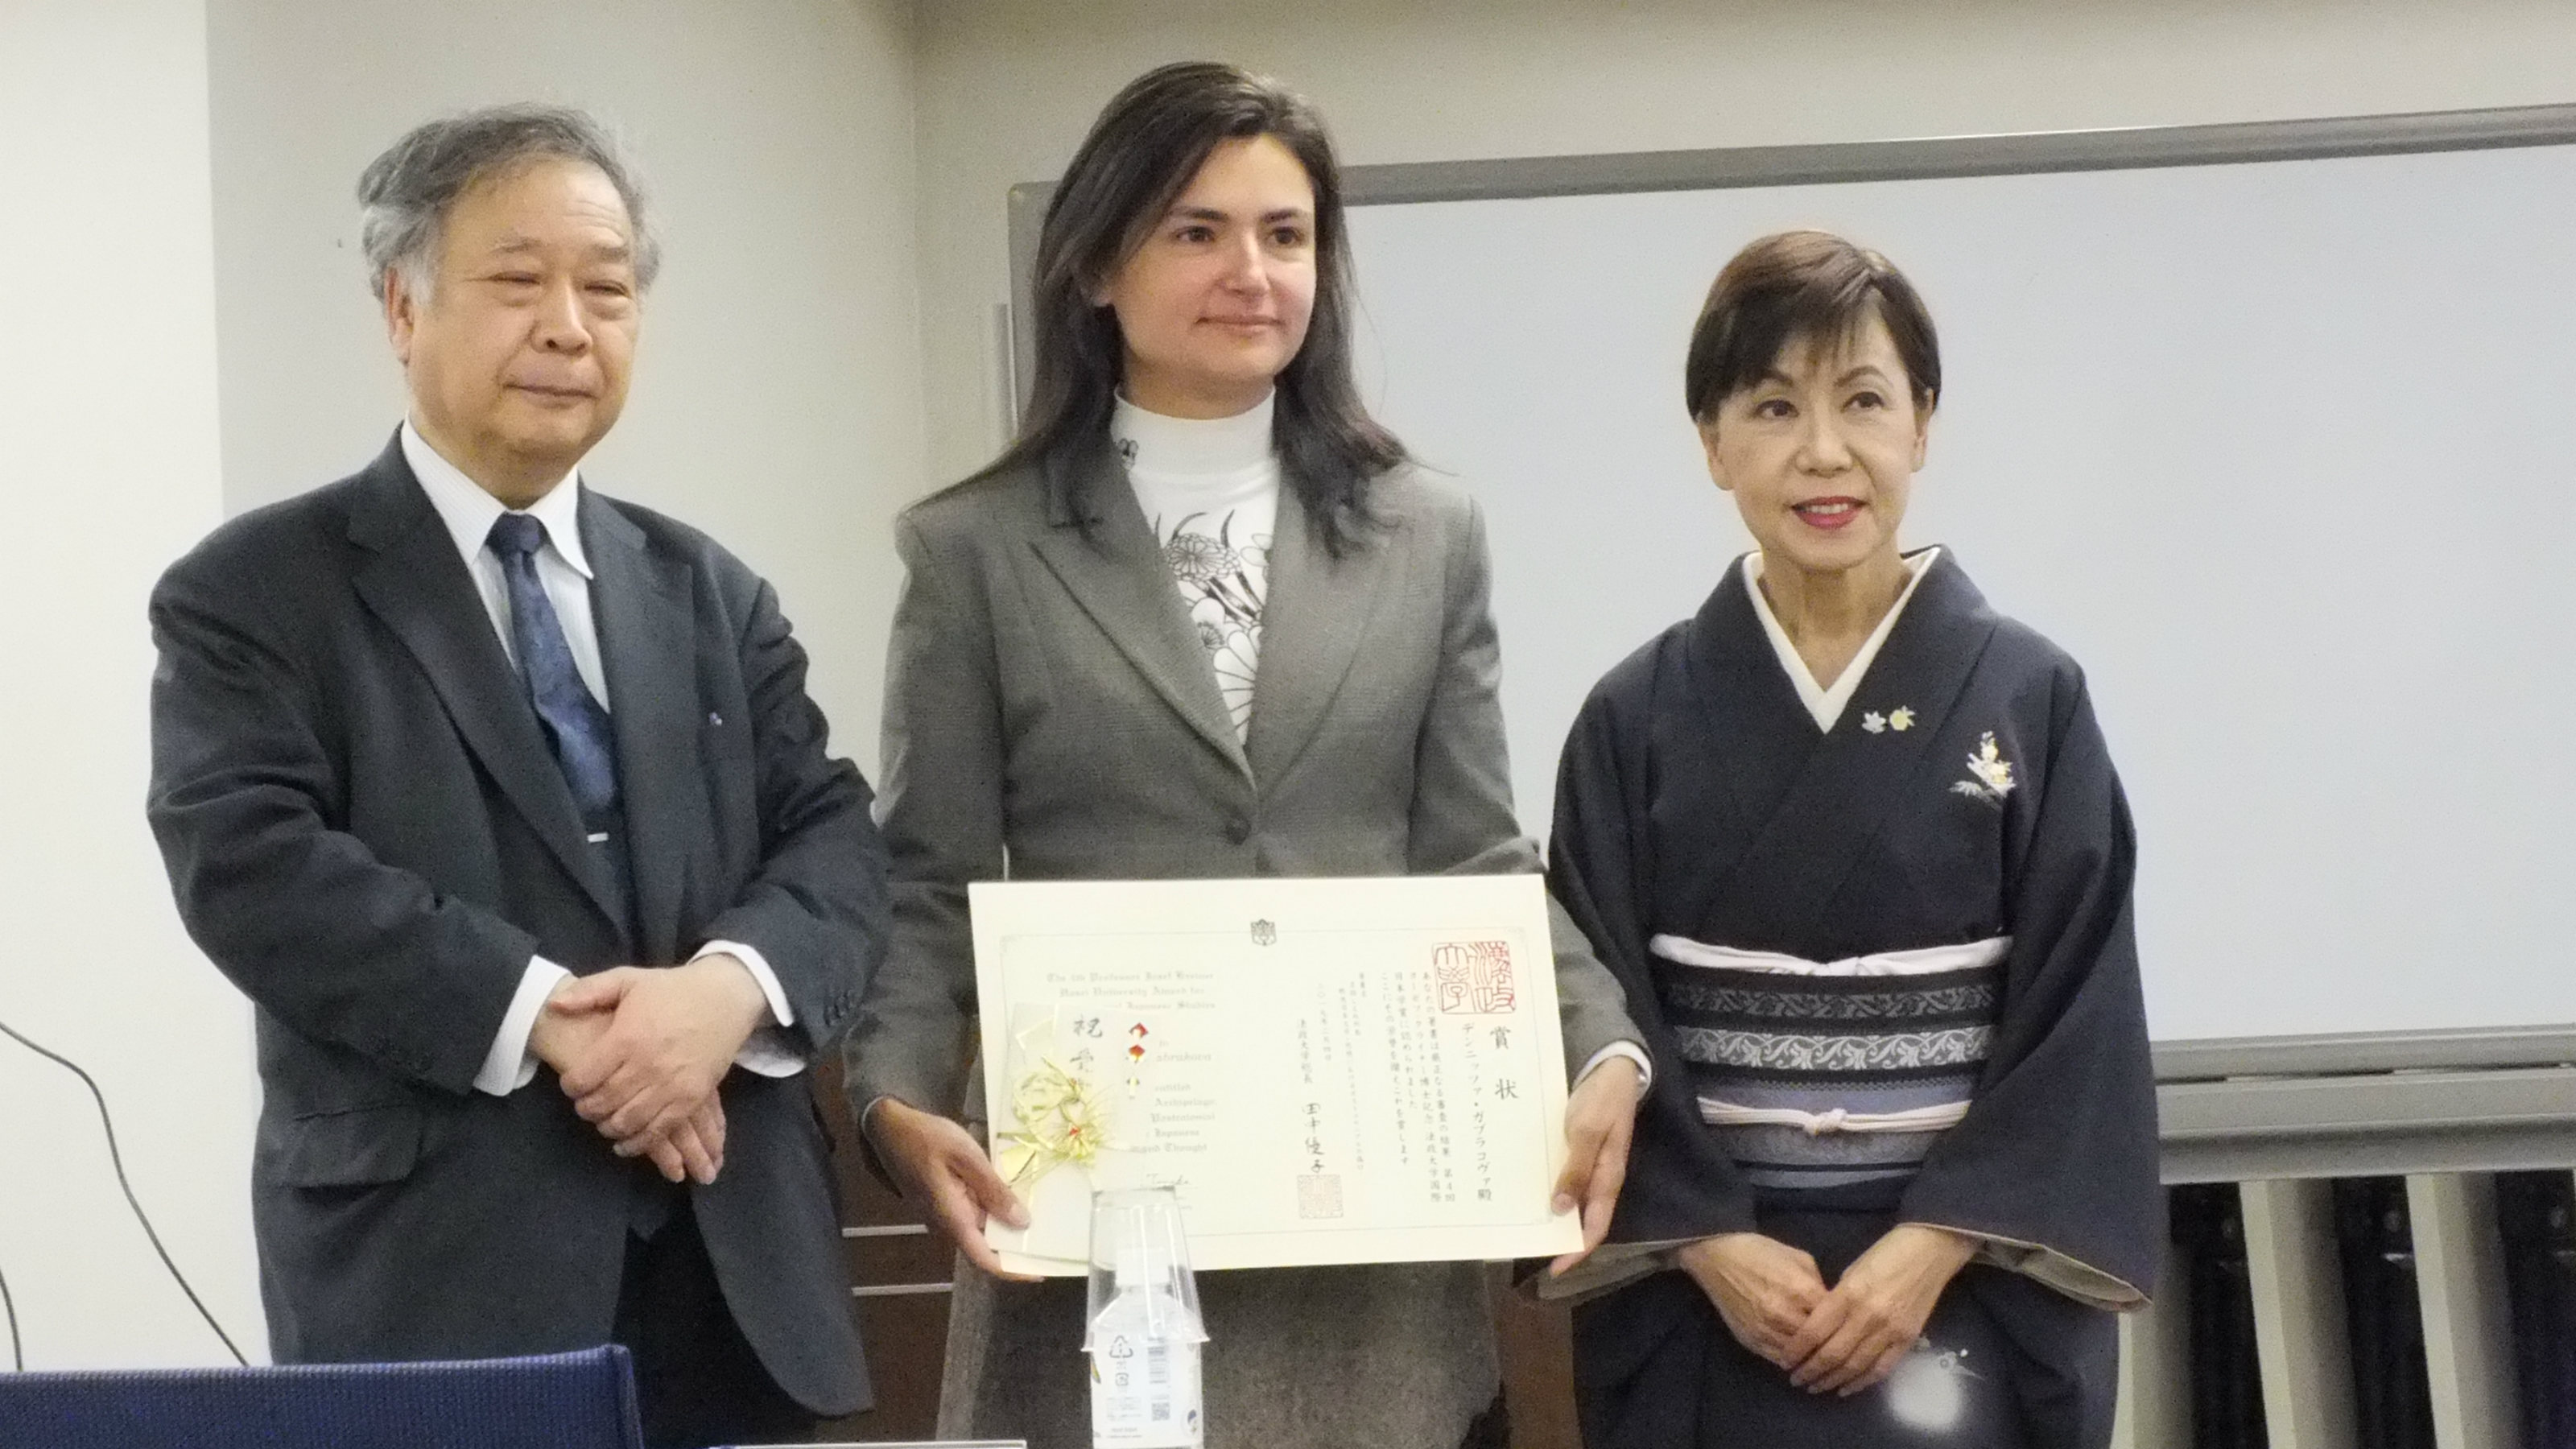 Dr Gabrakova recieves International award for contribution to Japanese studies